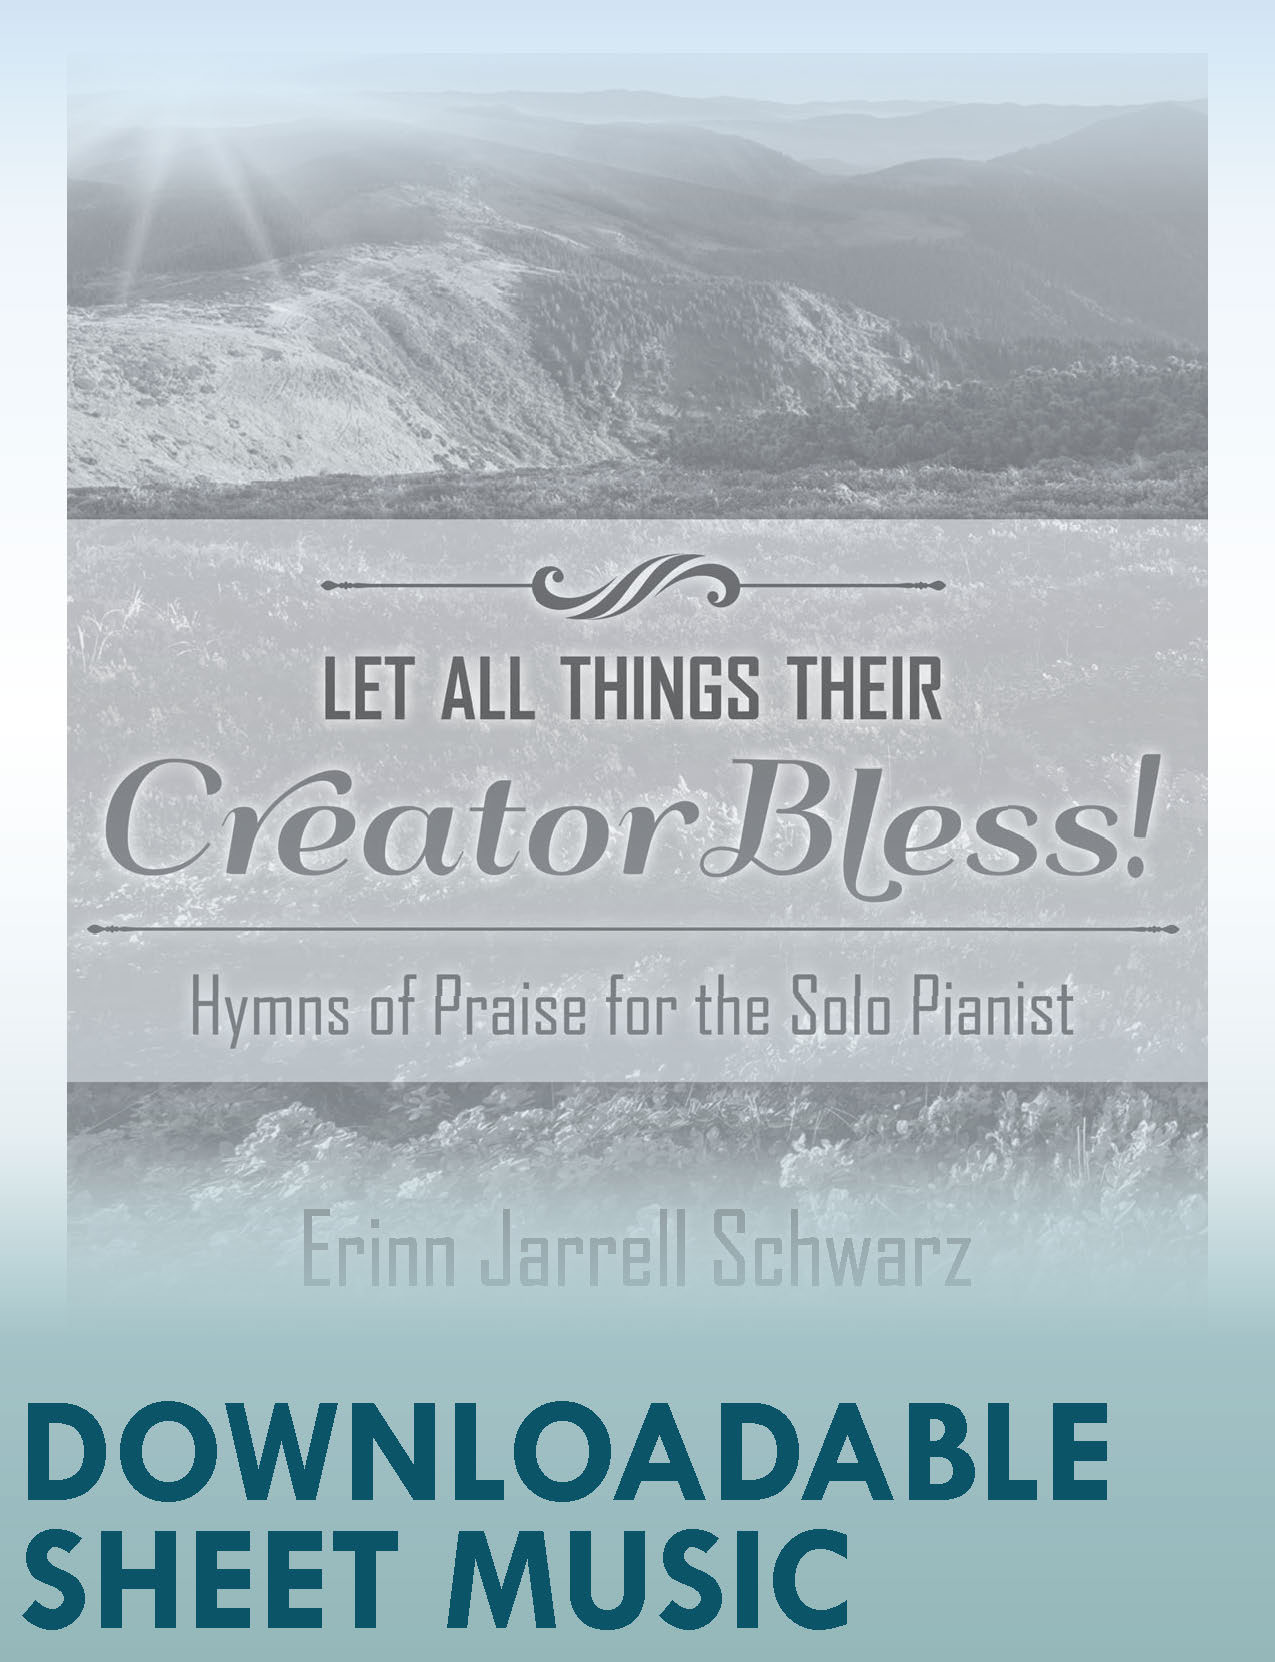 Let All Things Their Creator Bless! - Digital download